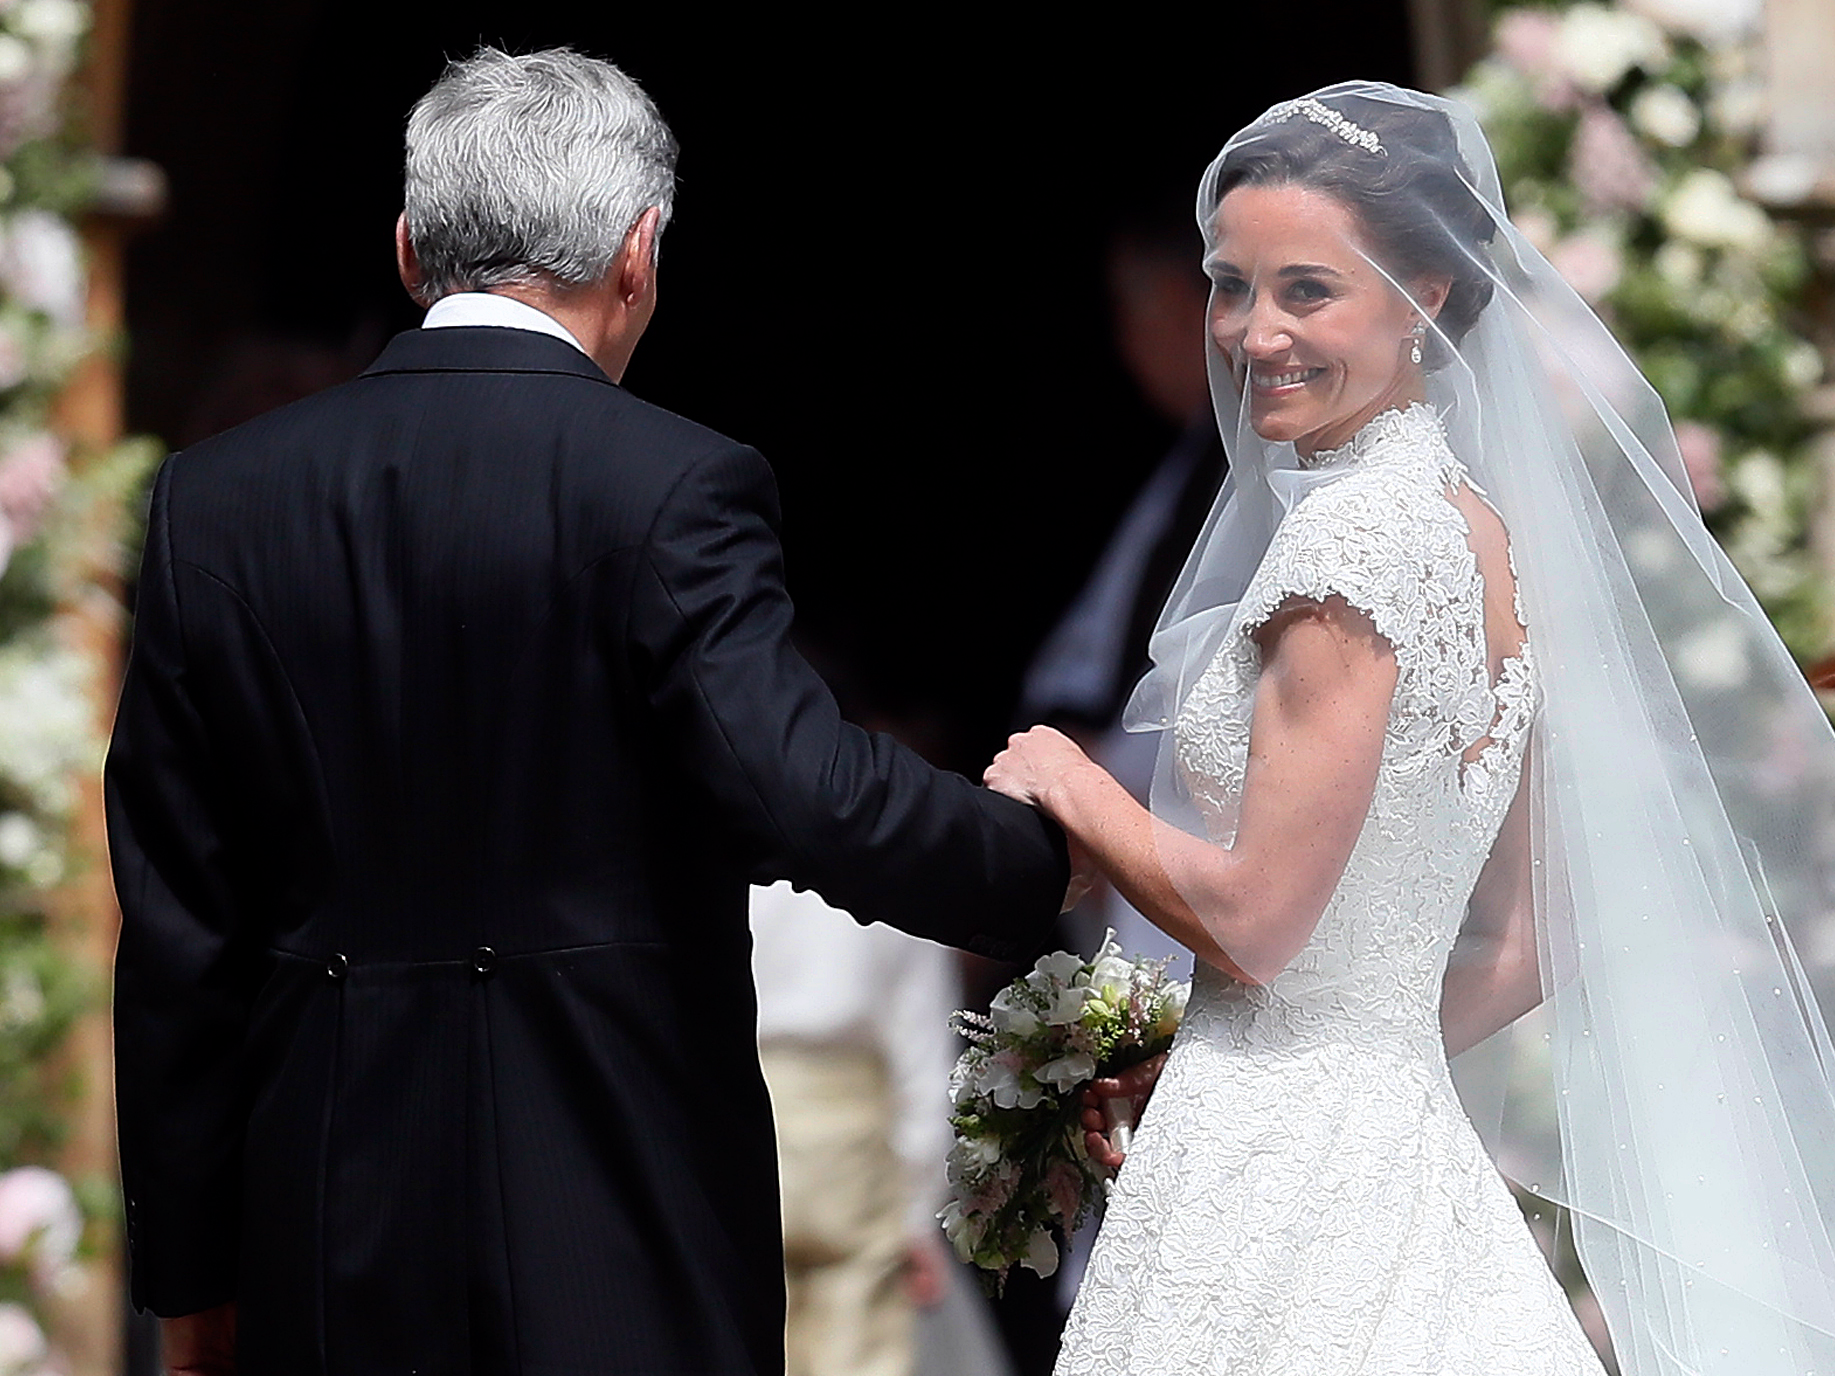 Pippa Middleton as a bride on her wedding day smiling under the veil